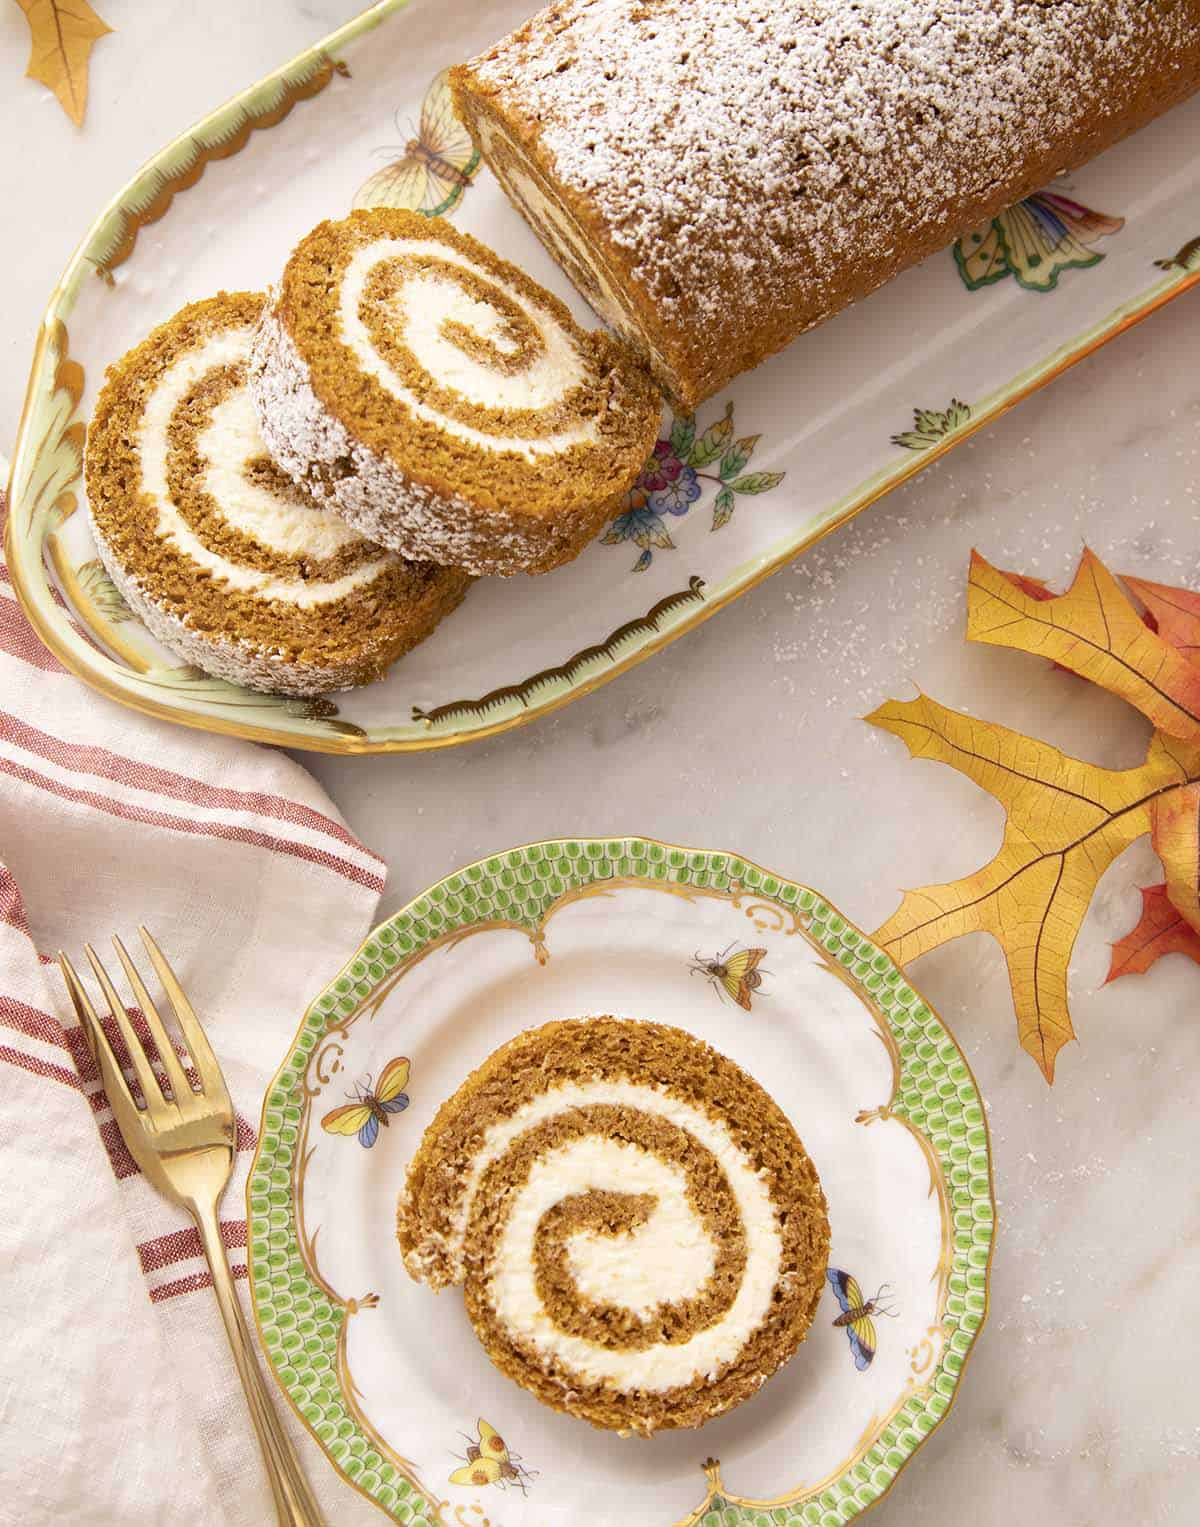 A piece of a pumpkin roll cake on a green and white plate.